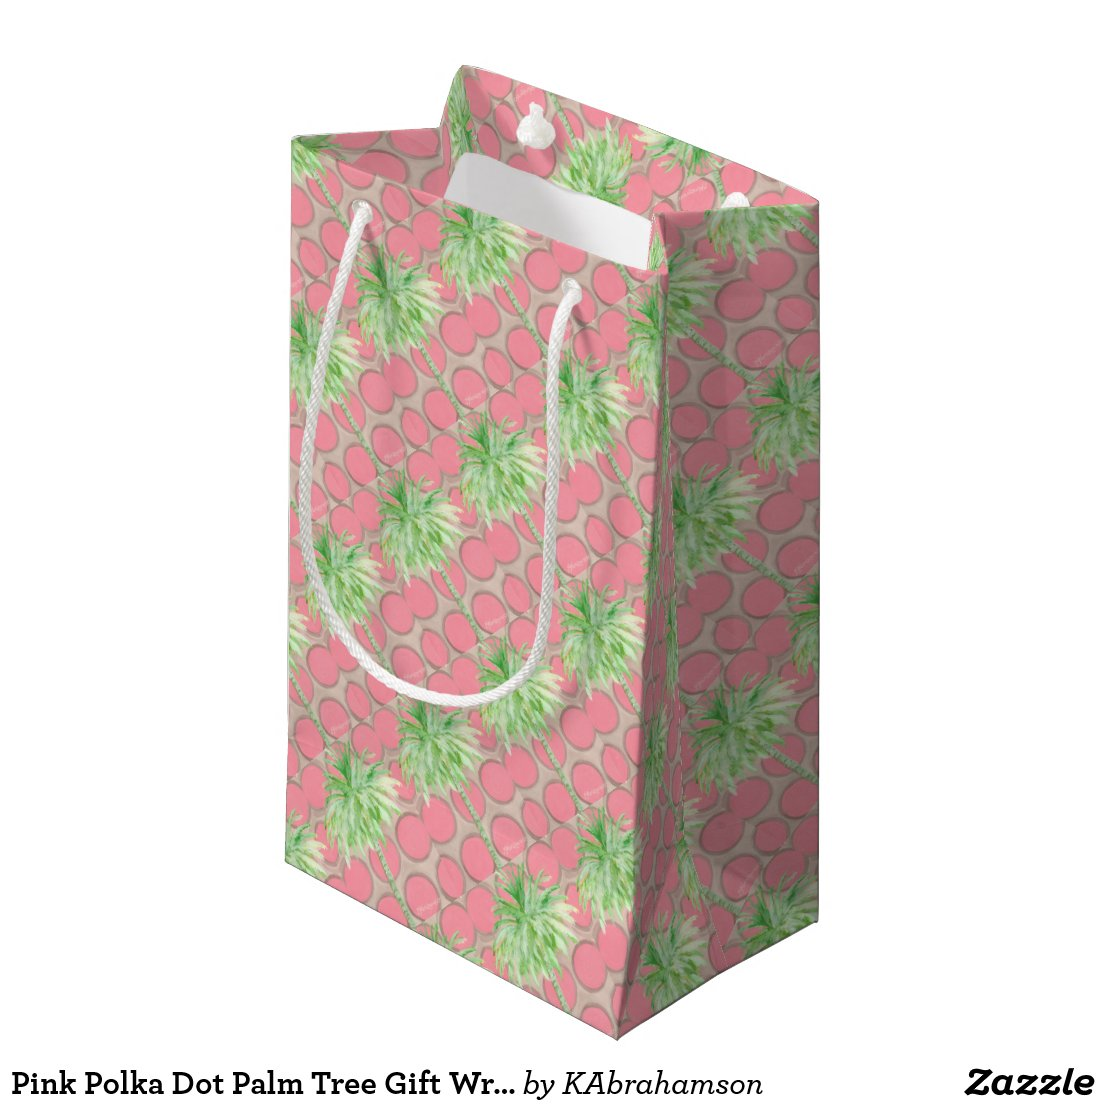 Pink Polka Dot Palm Tree Gift Wrap Small Gift Bag